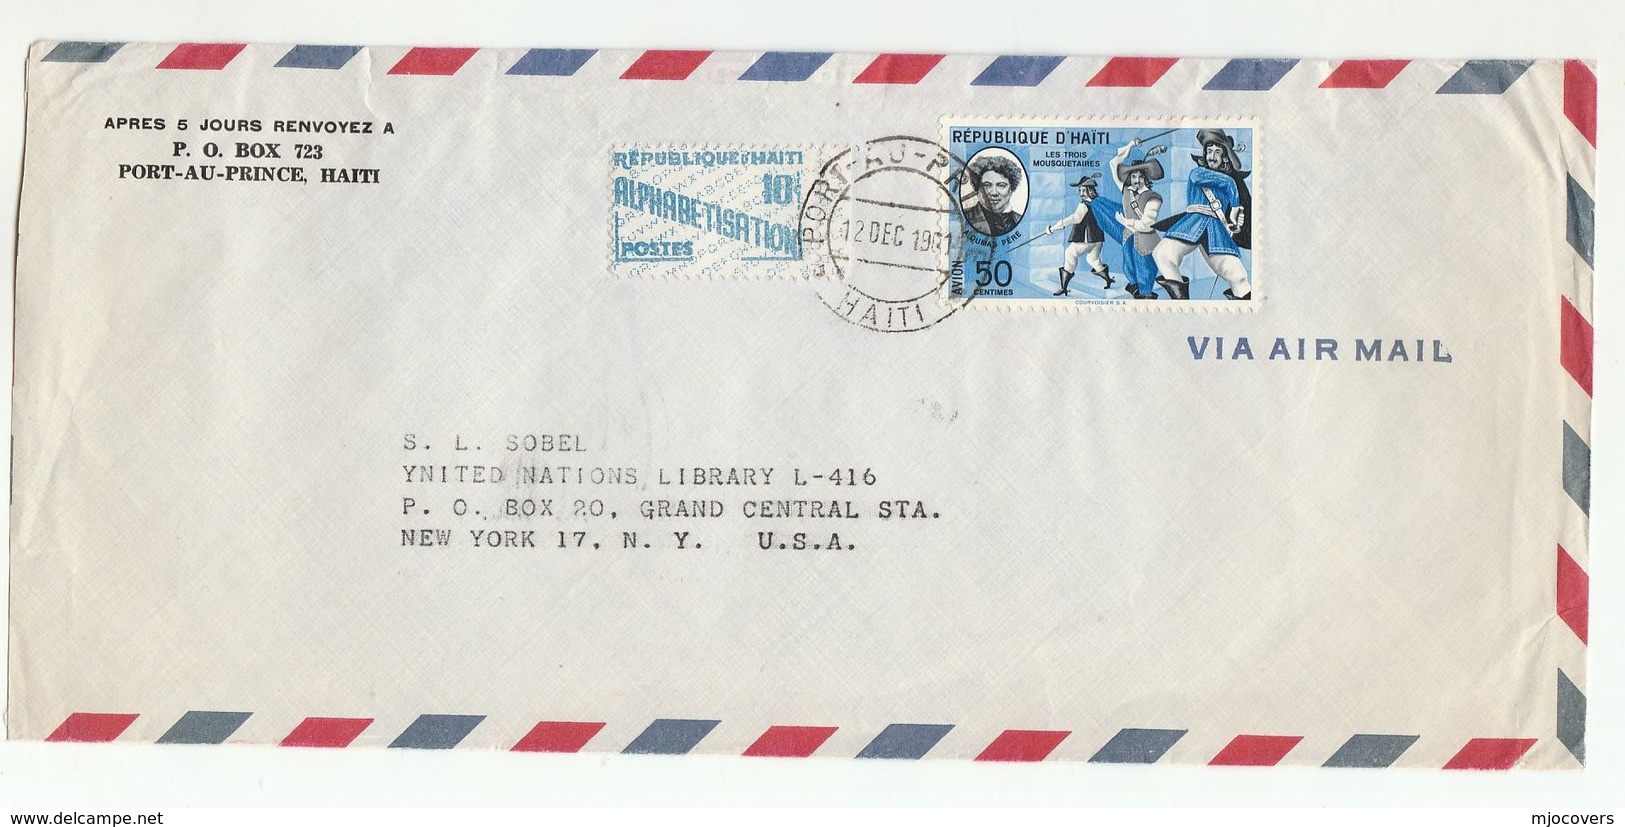 1961 HAITI COVER DUMAS MUSKETEERS Stamps To UNITED NATIONS USA Airmail Un Literature - Haiti